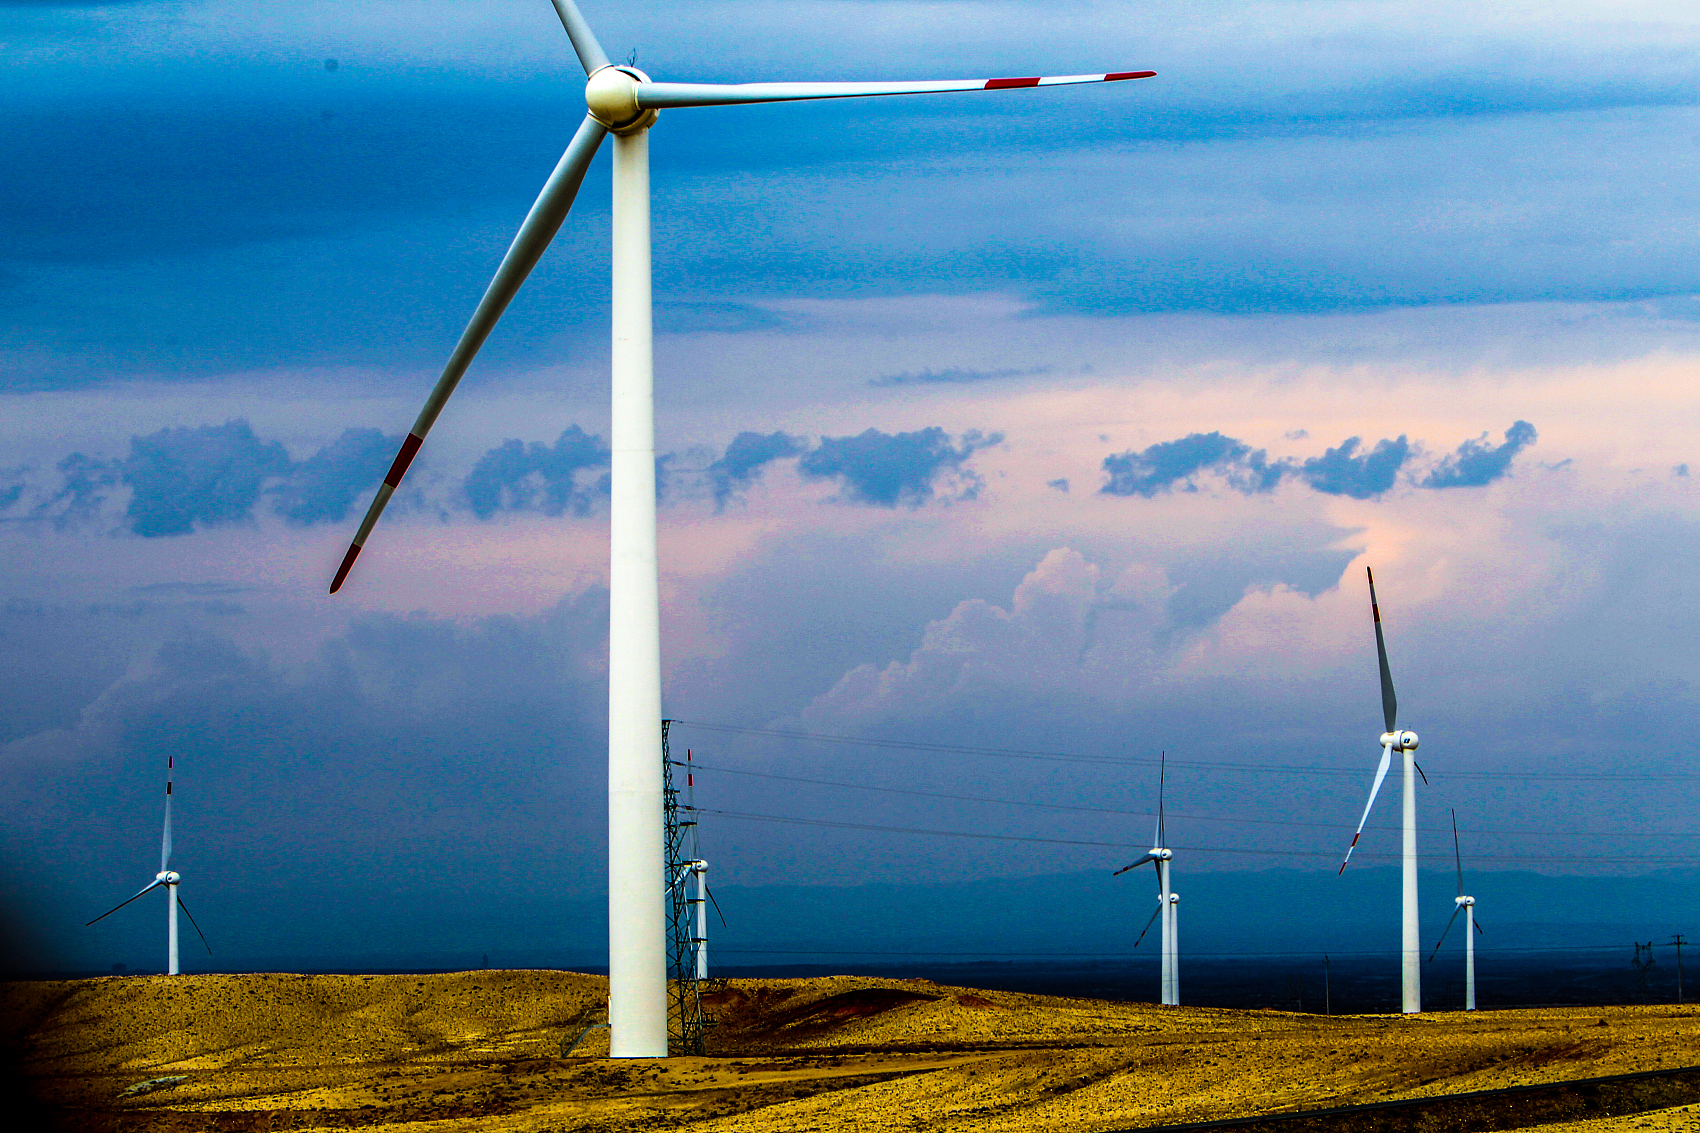 China's Xiong'an New Area gets green power supply